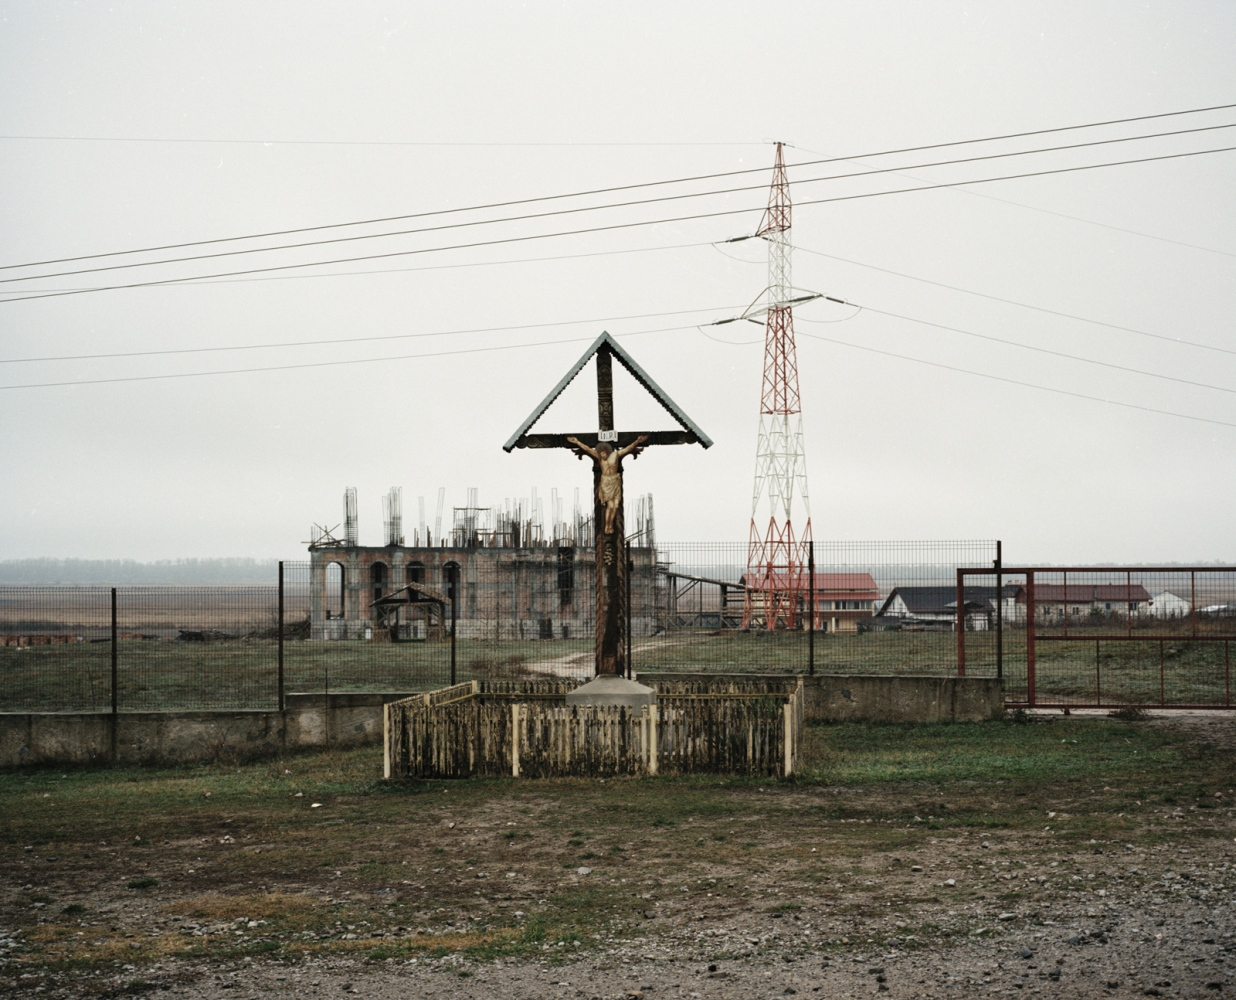 Romania, Tulcea. A church has been built in the countryside of Tulcea. After the fall of the comunism regimen, religion became more and more popular.